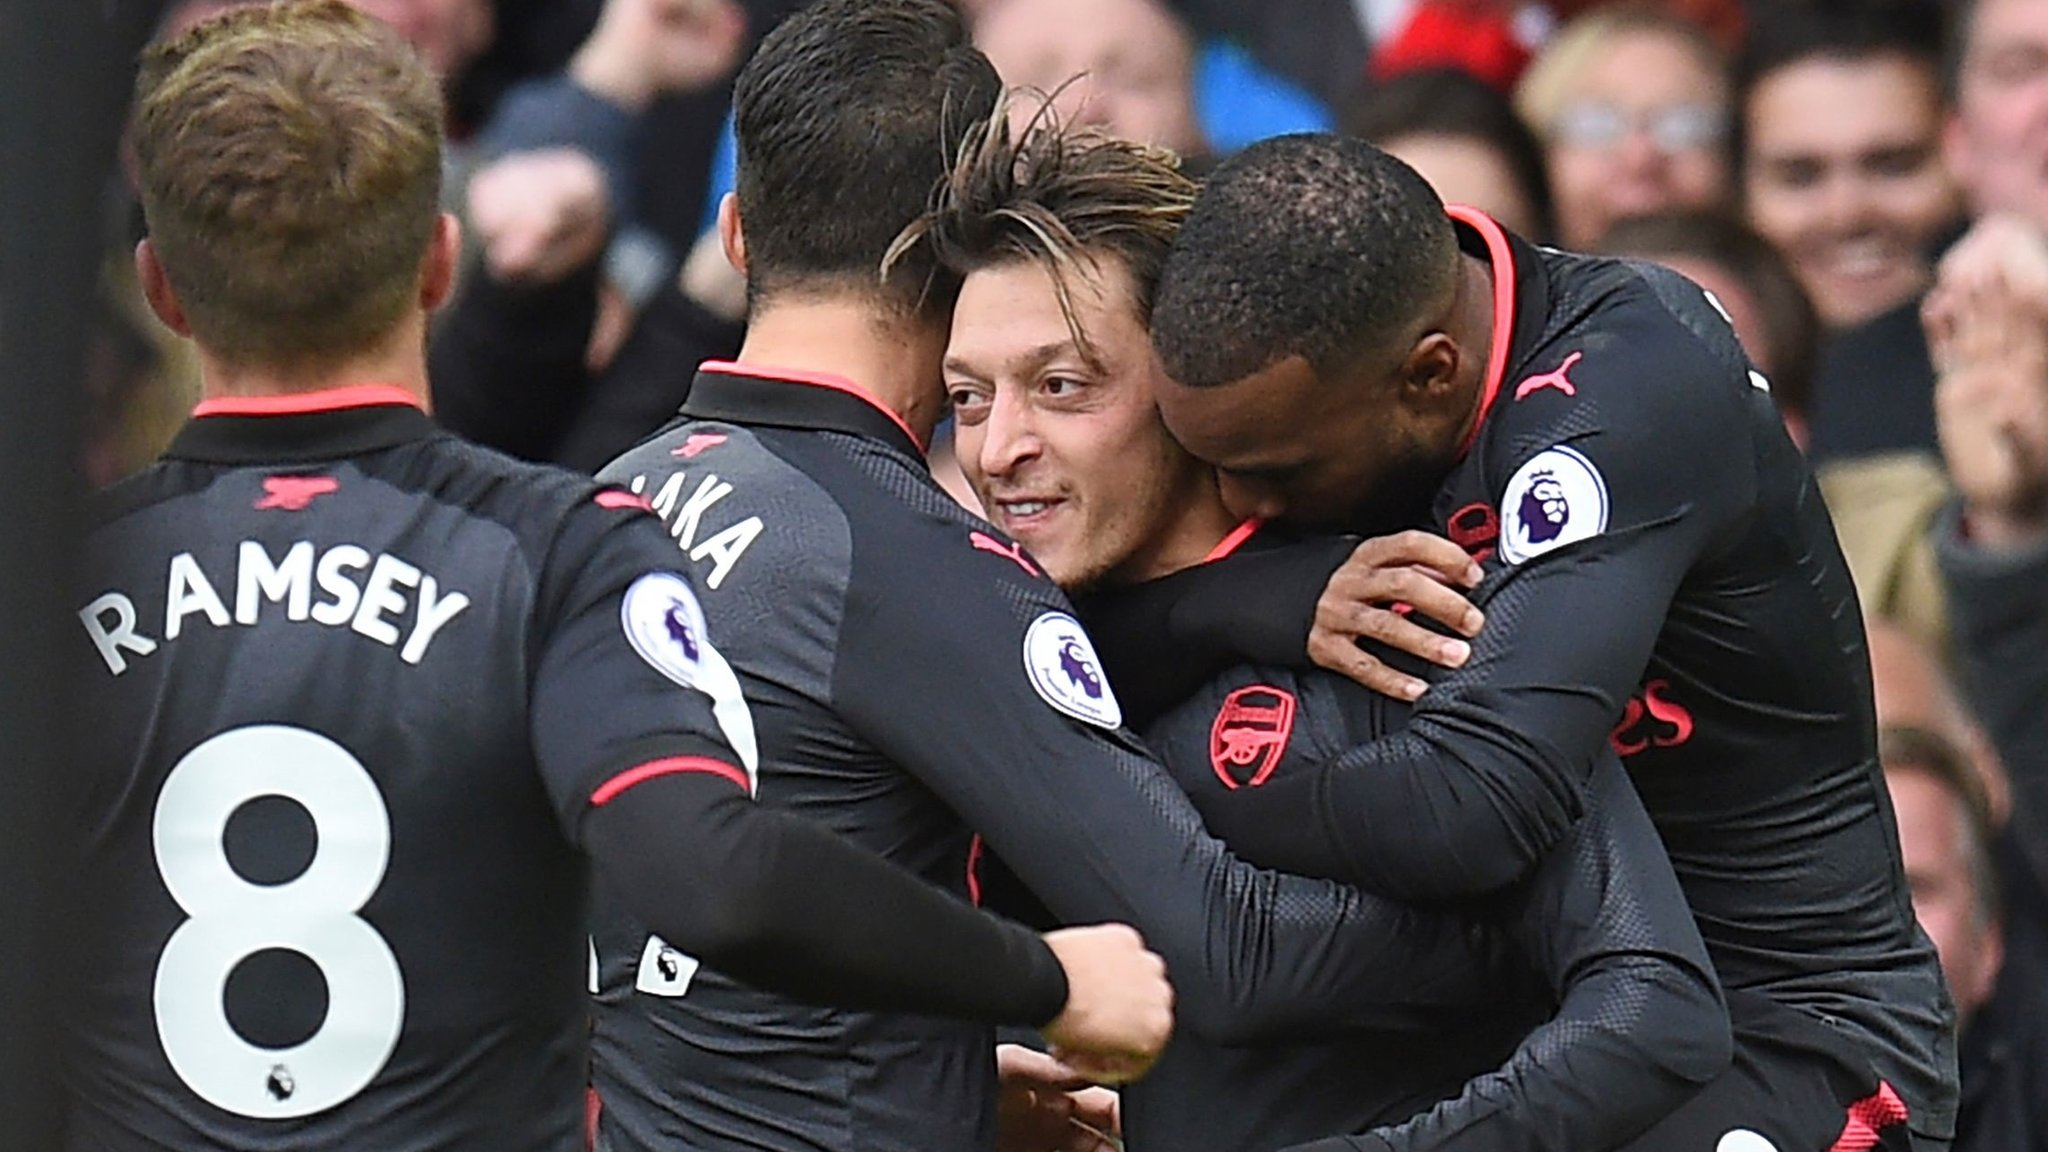 'I can change the situation' - Koeman after Arsenal put Everton in relegation zone